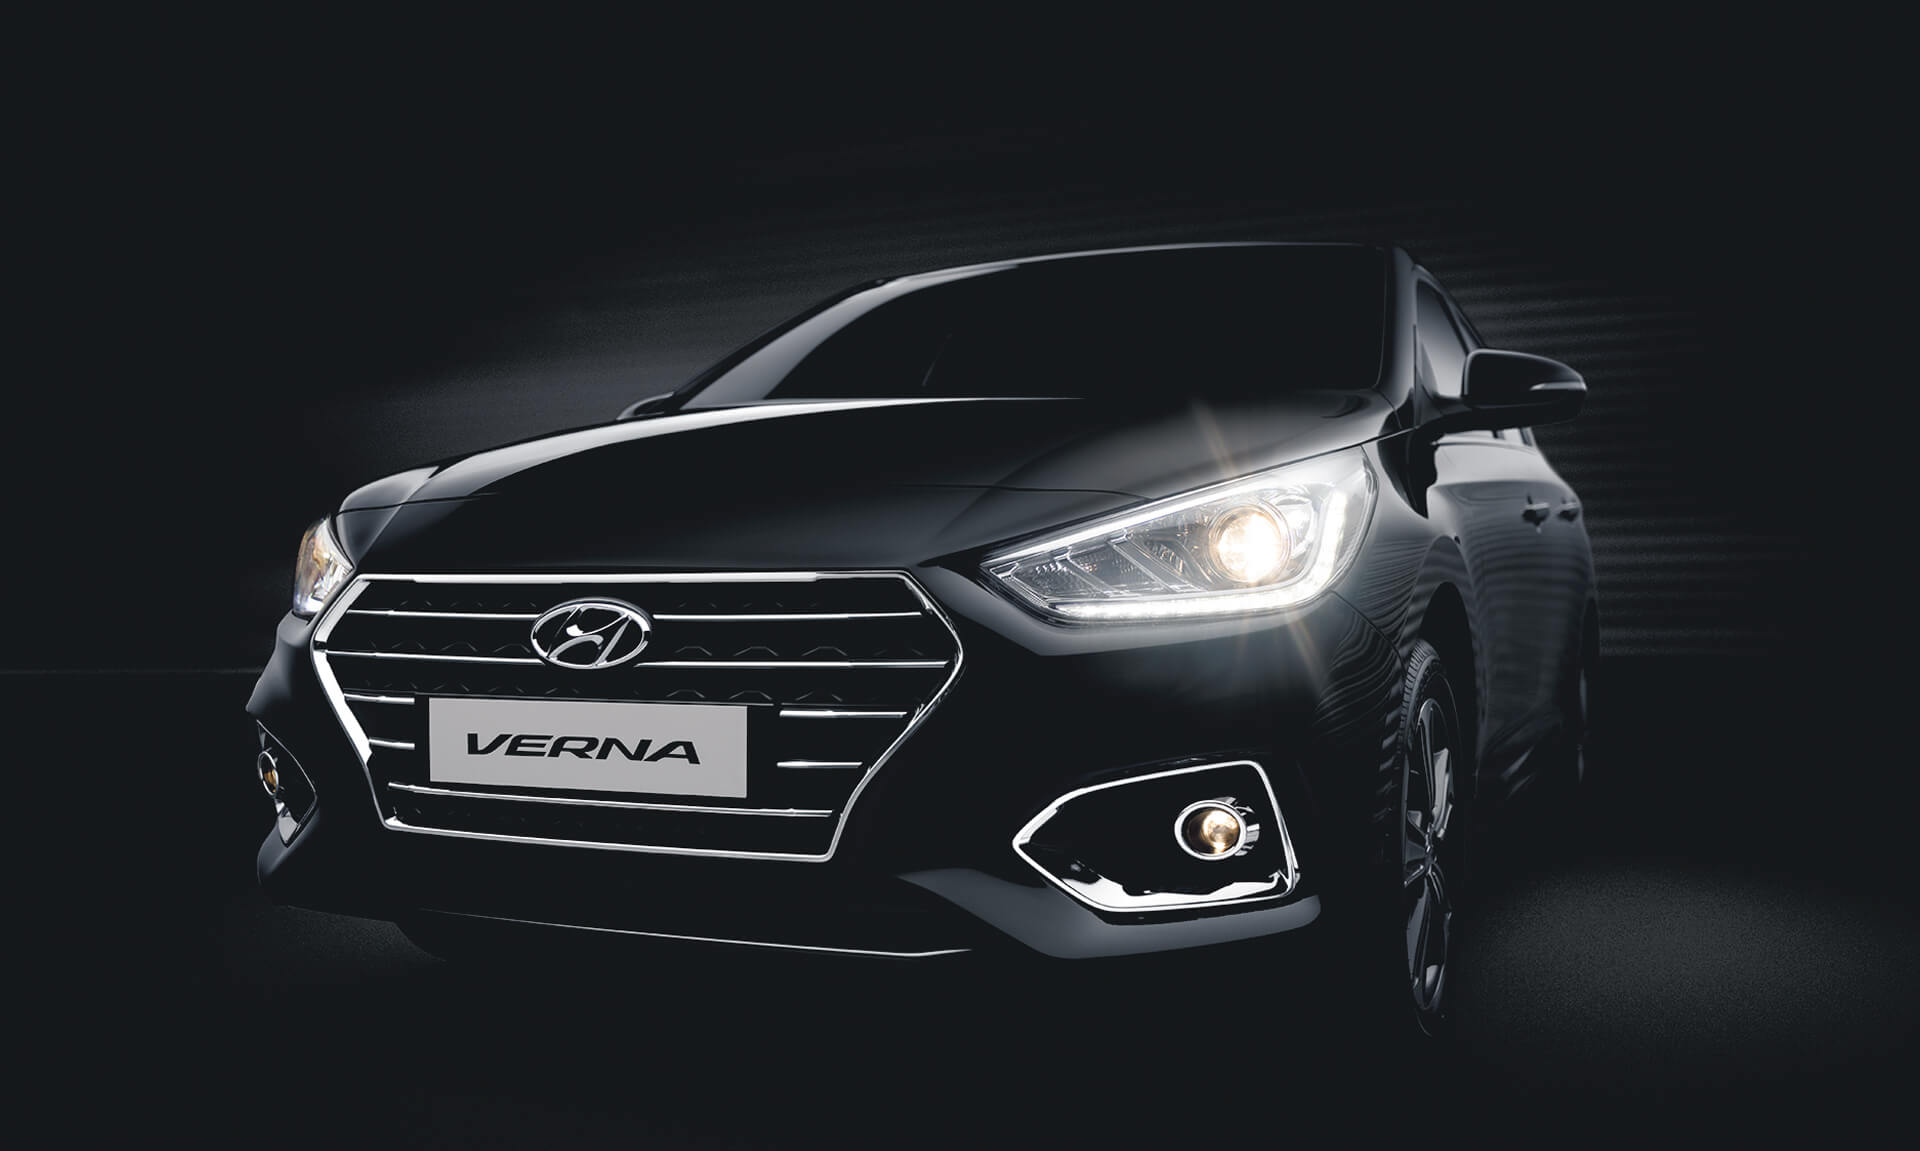 Hyundai Verna Car Dealer Mumbai, Thane - Shreenath Hyundai